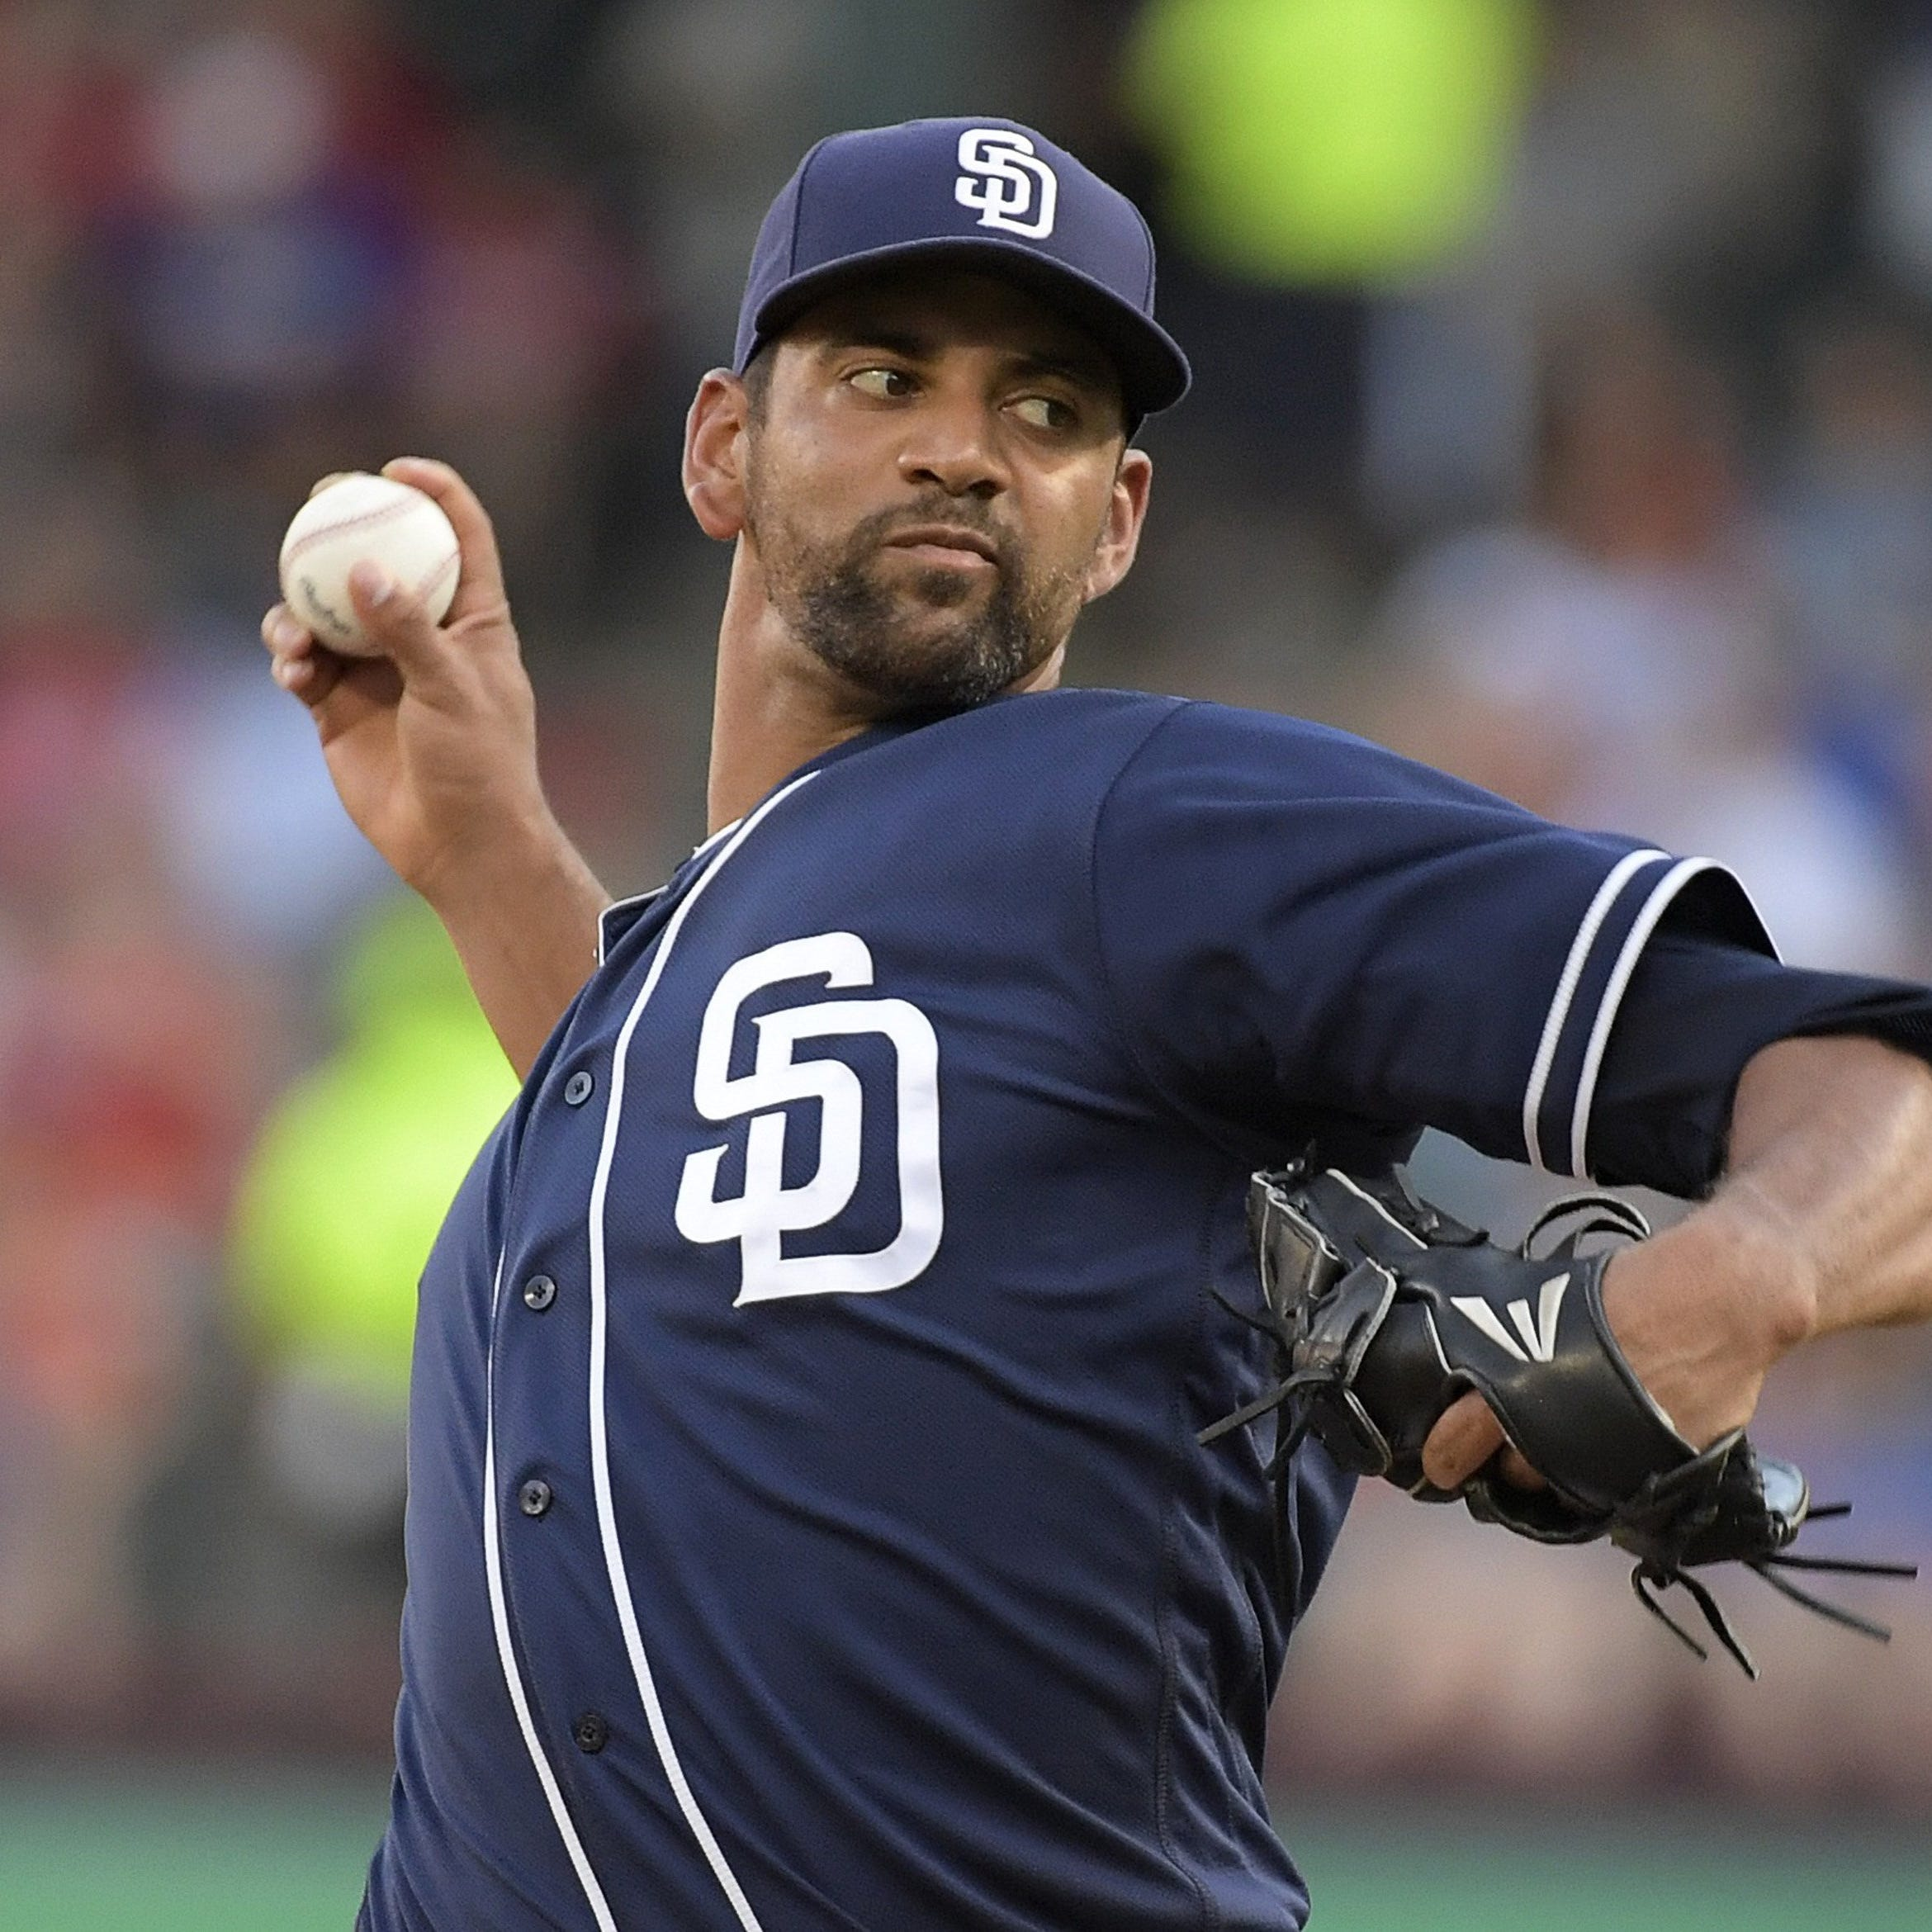 Detroit Tigers to sign starter Tyson Ross to 1-year, $5.75 million deal